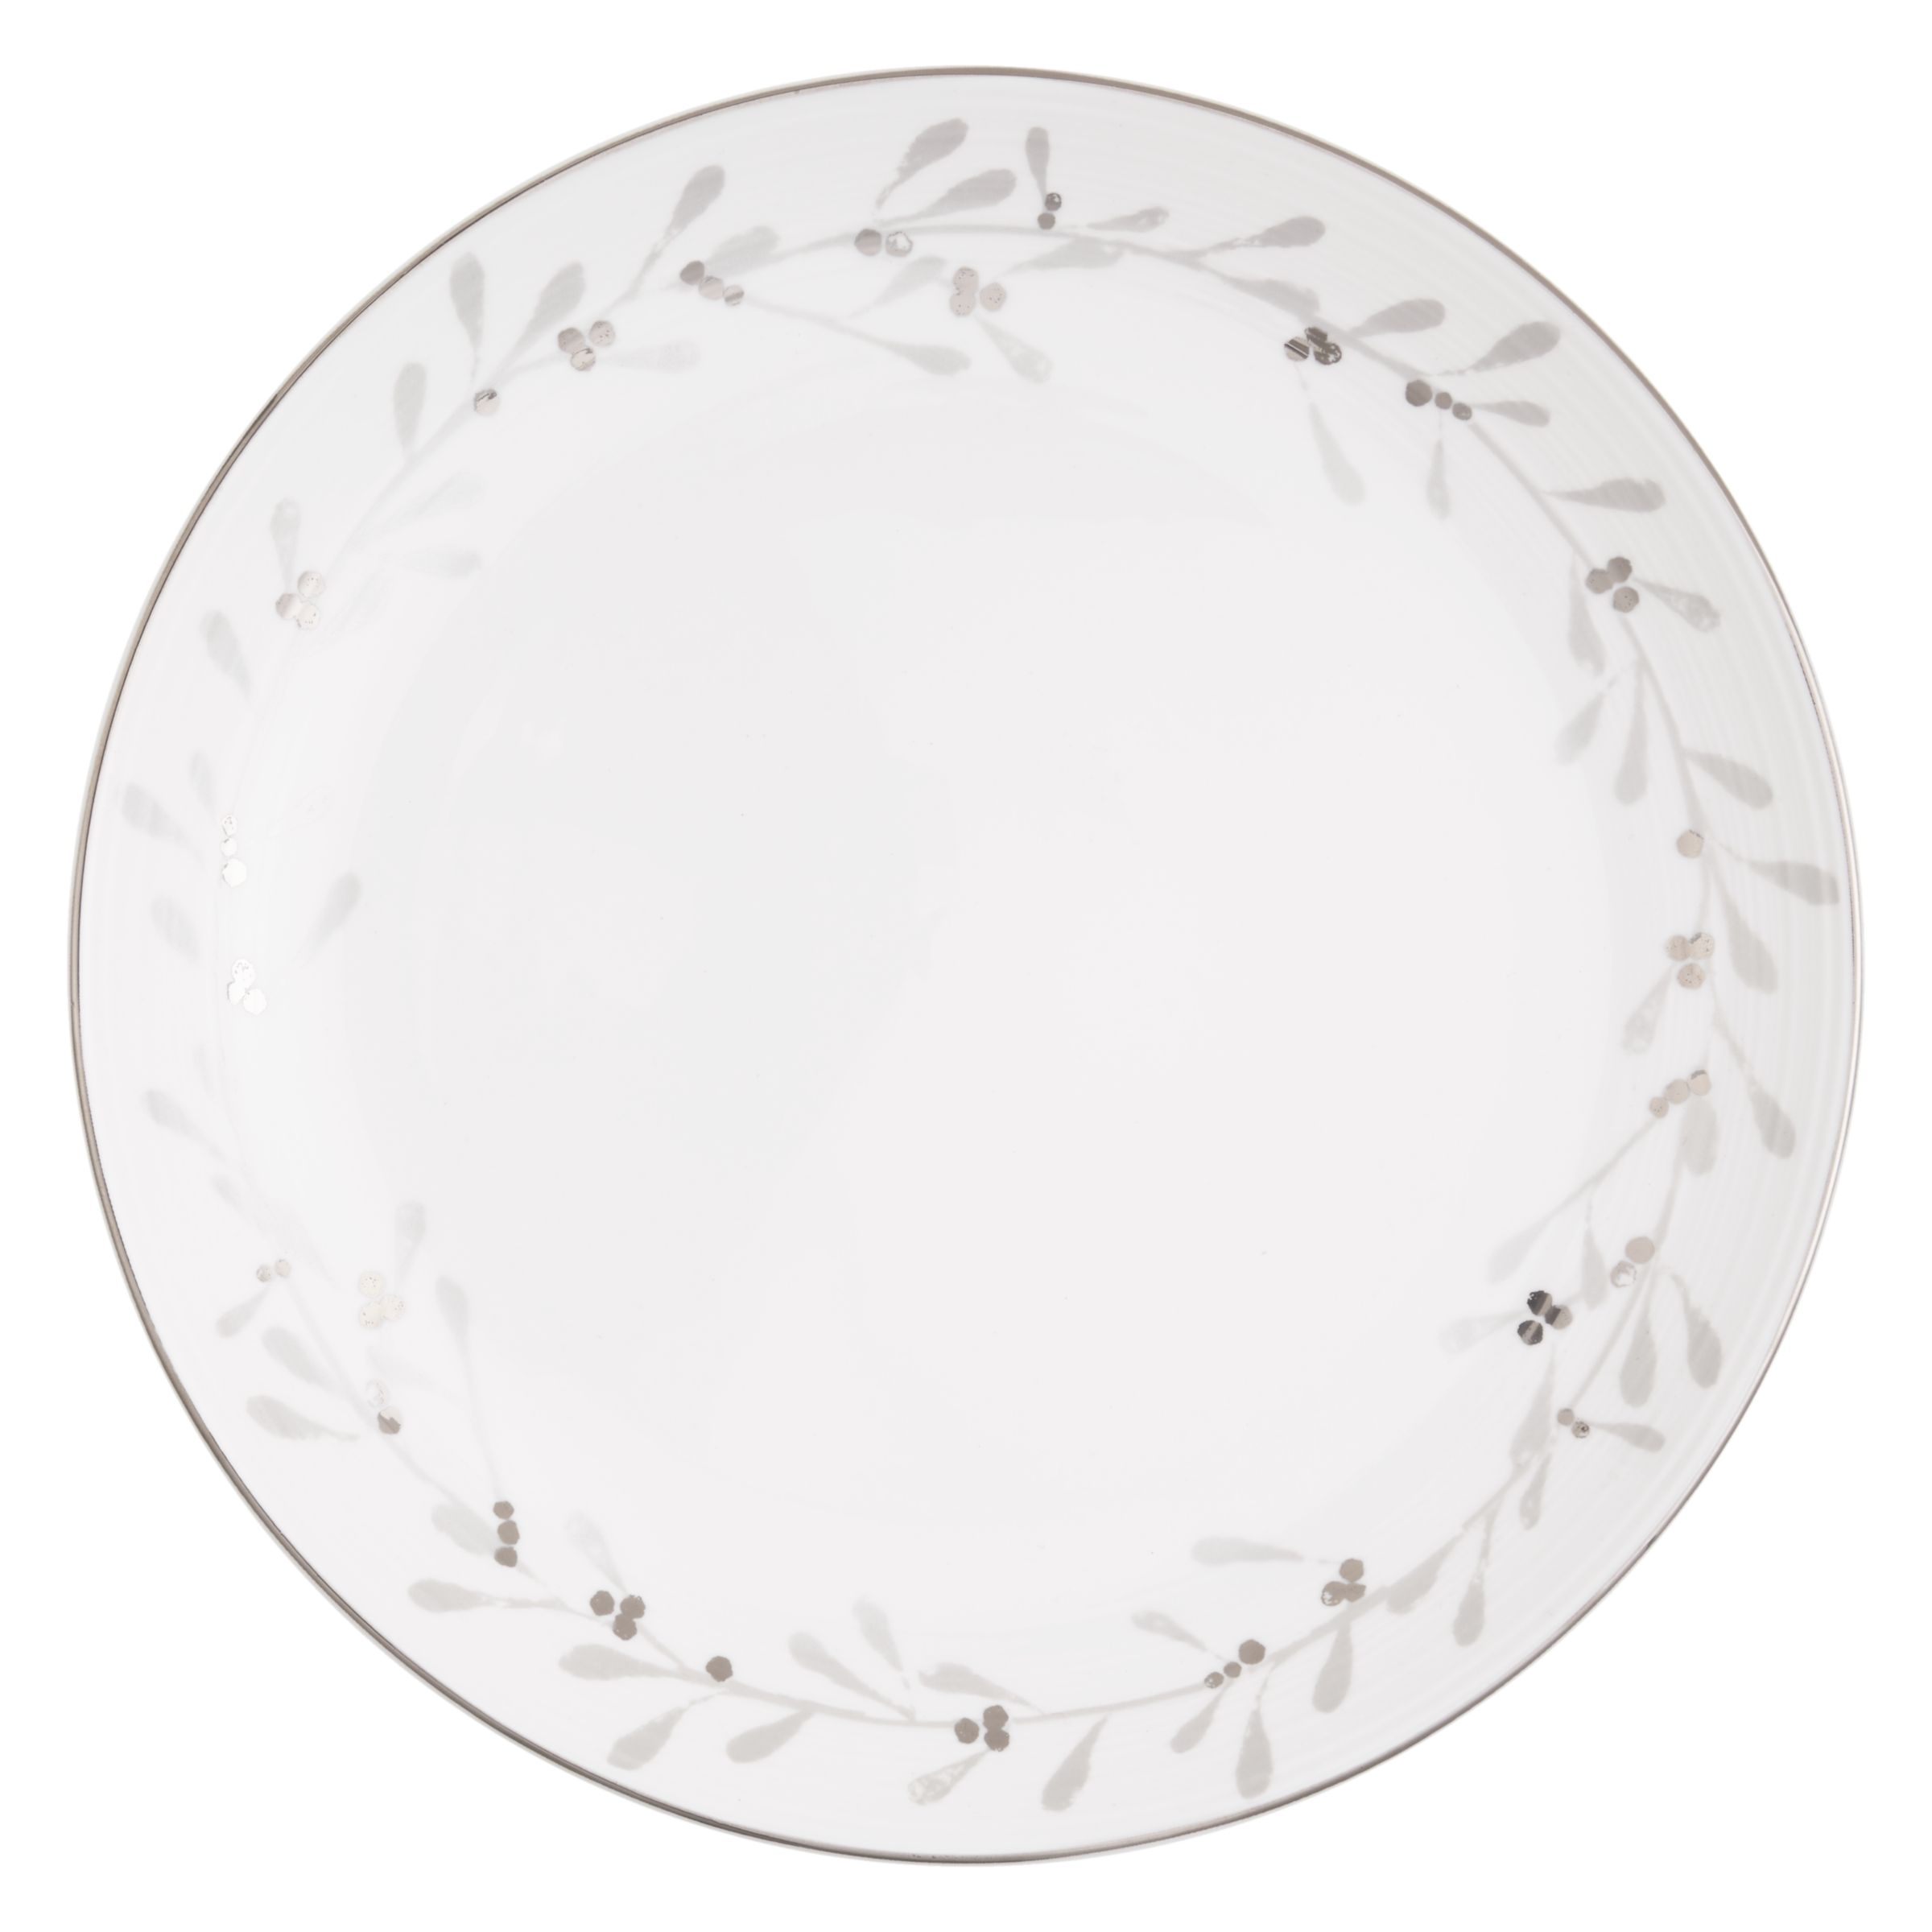 John Lewis Partners Snowshill Wreath 27 5cm Plate White Silver At John Lewis Partners